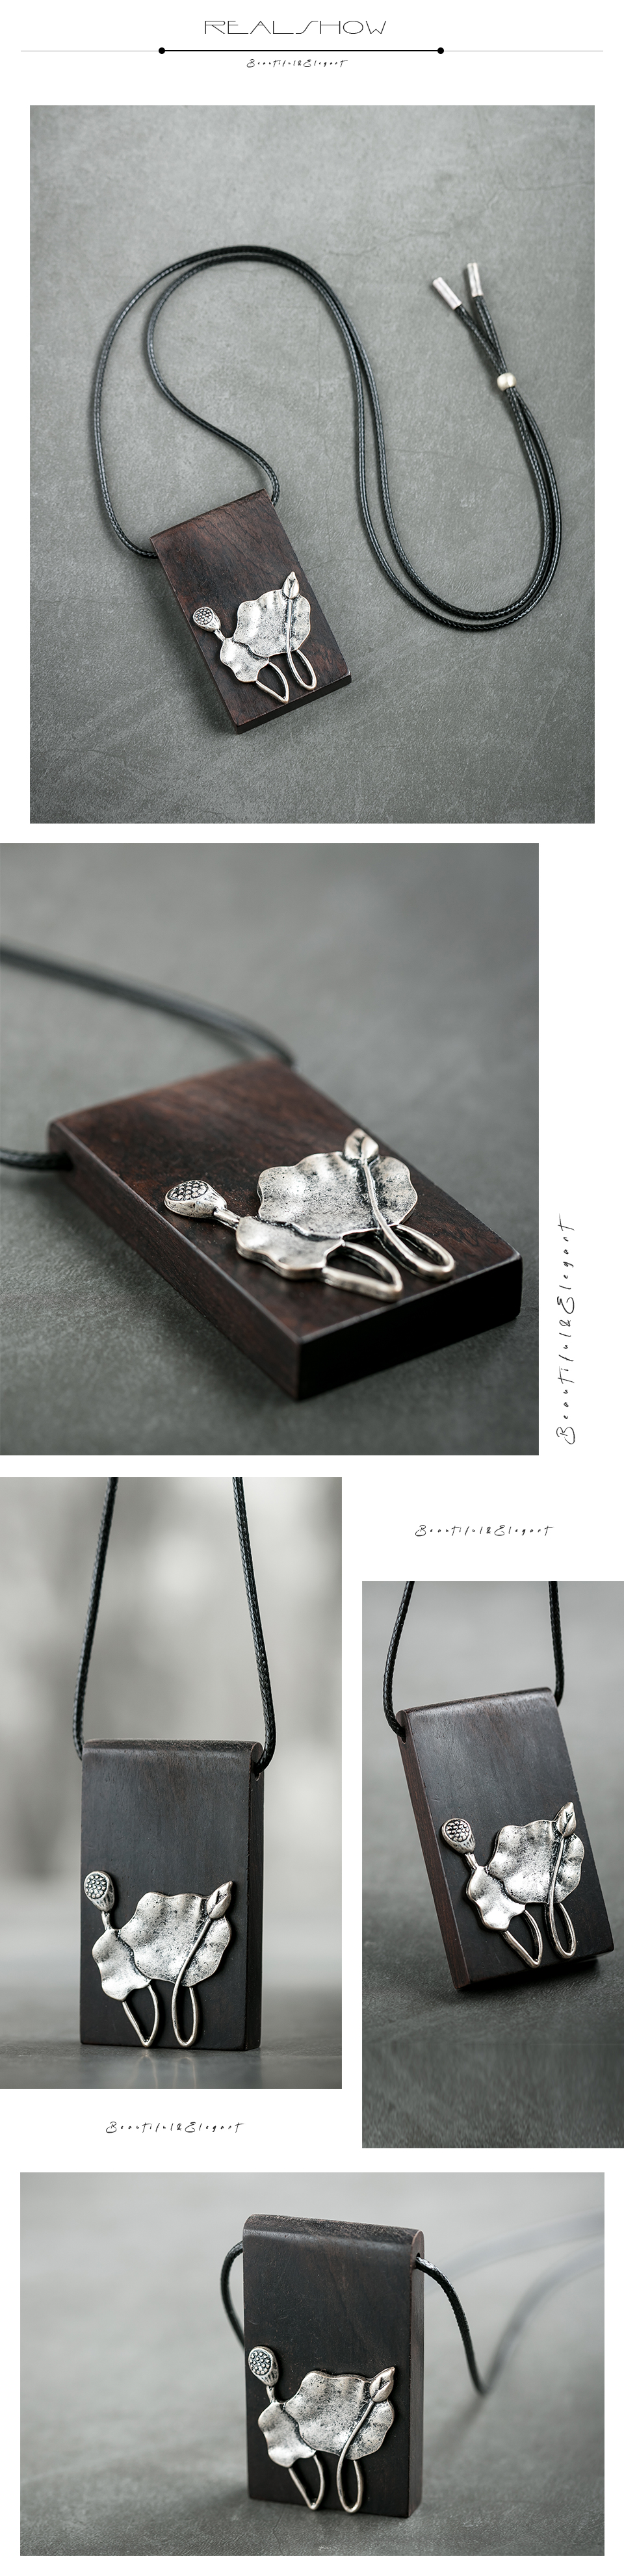 Mosaic Lotus Necklace Wood Pendant&Necklaces for Female Handmade Fashion Vintage Pendant Sweater Rope Chain Jewelry